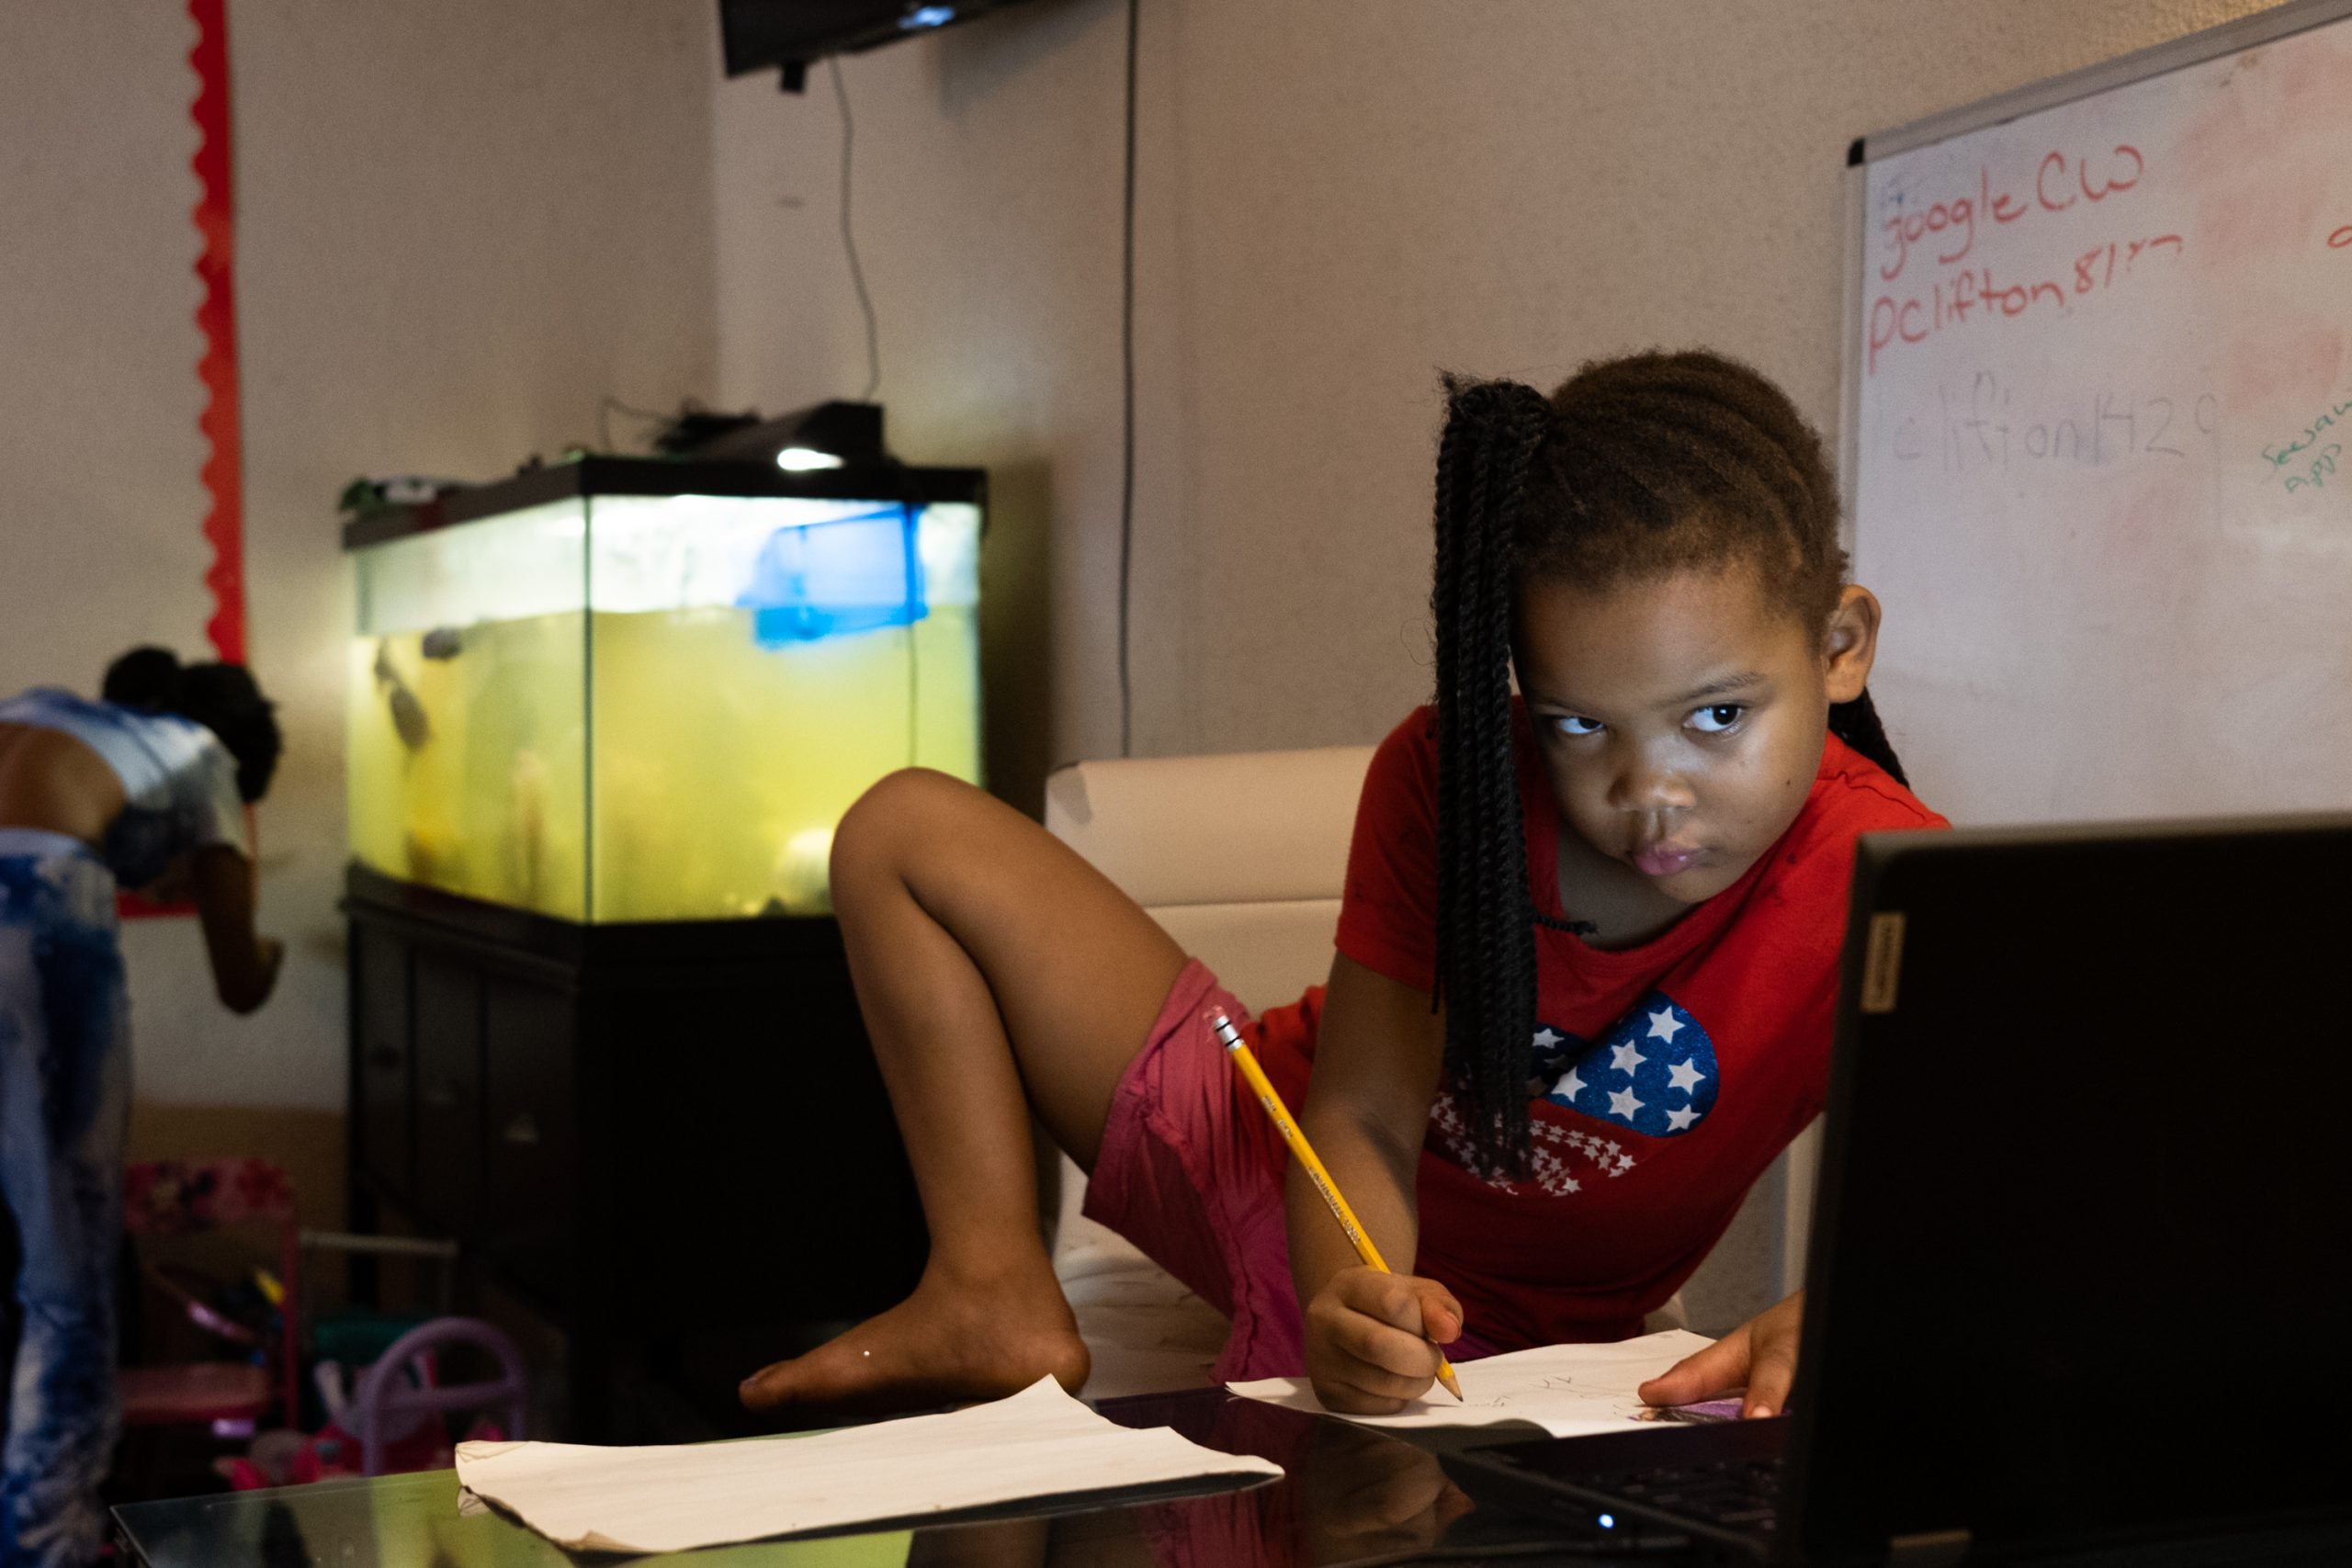 Young girl works on homework with leg on desk